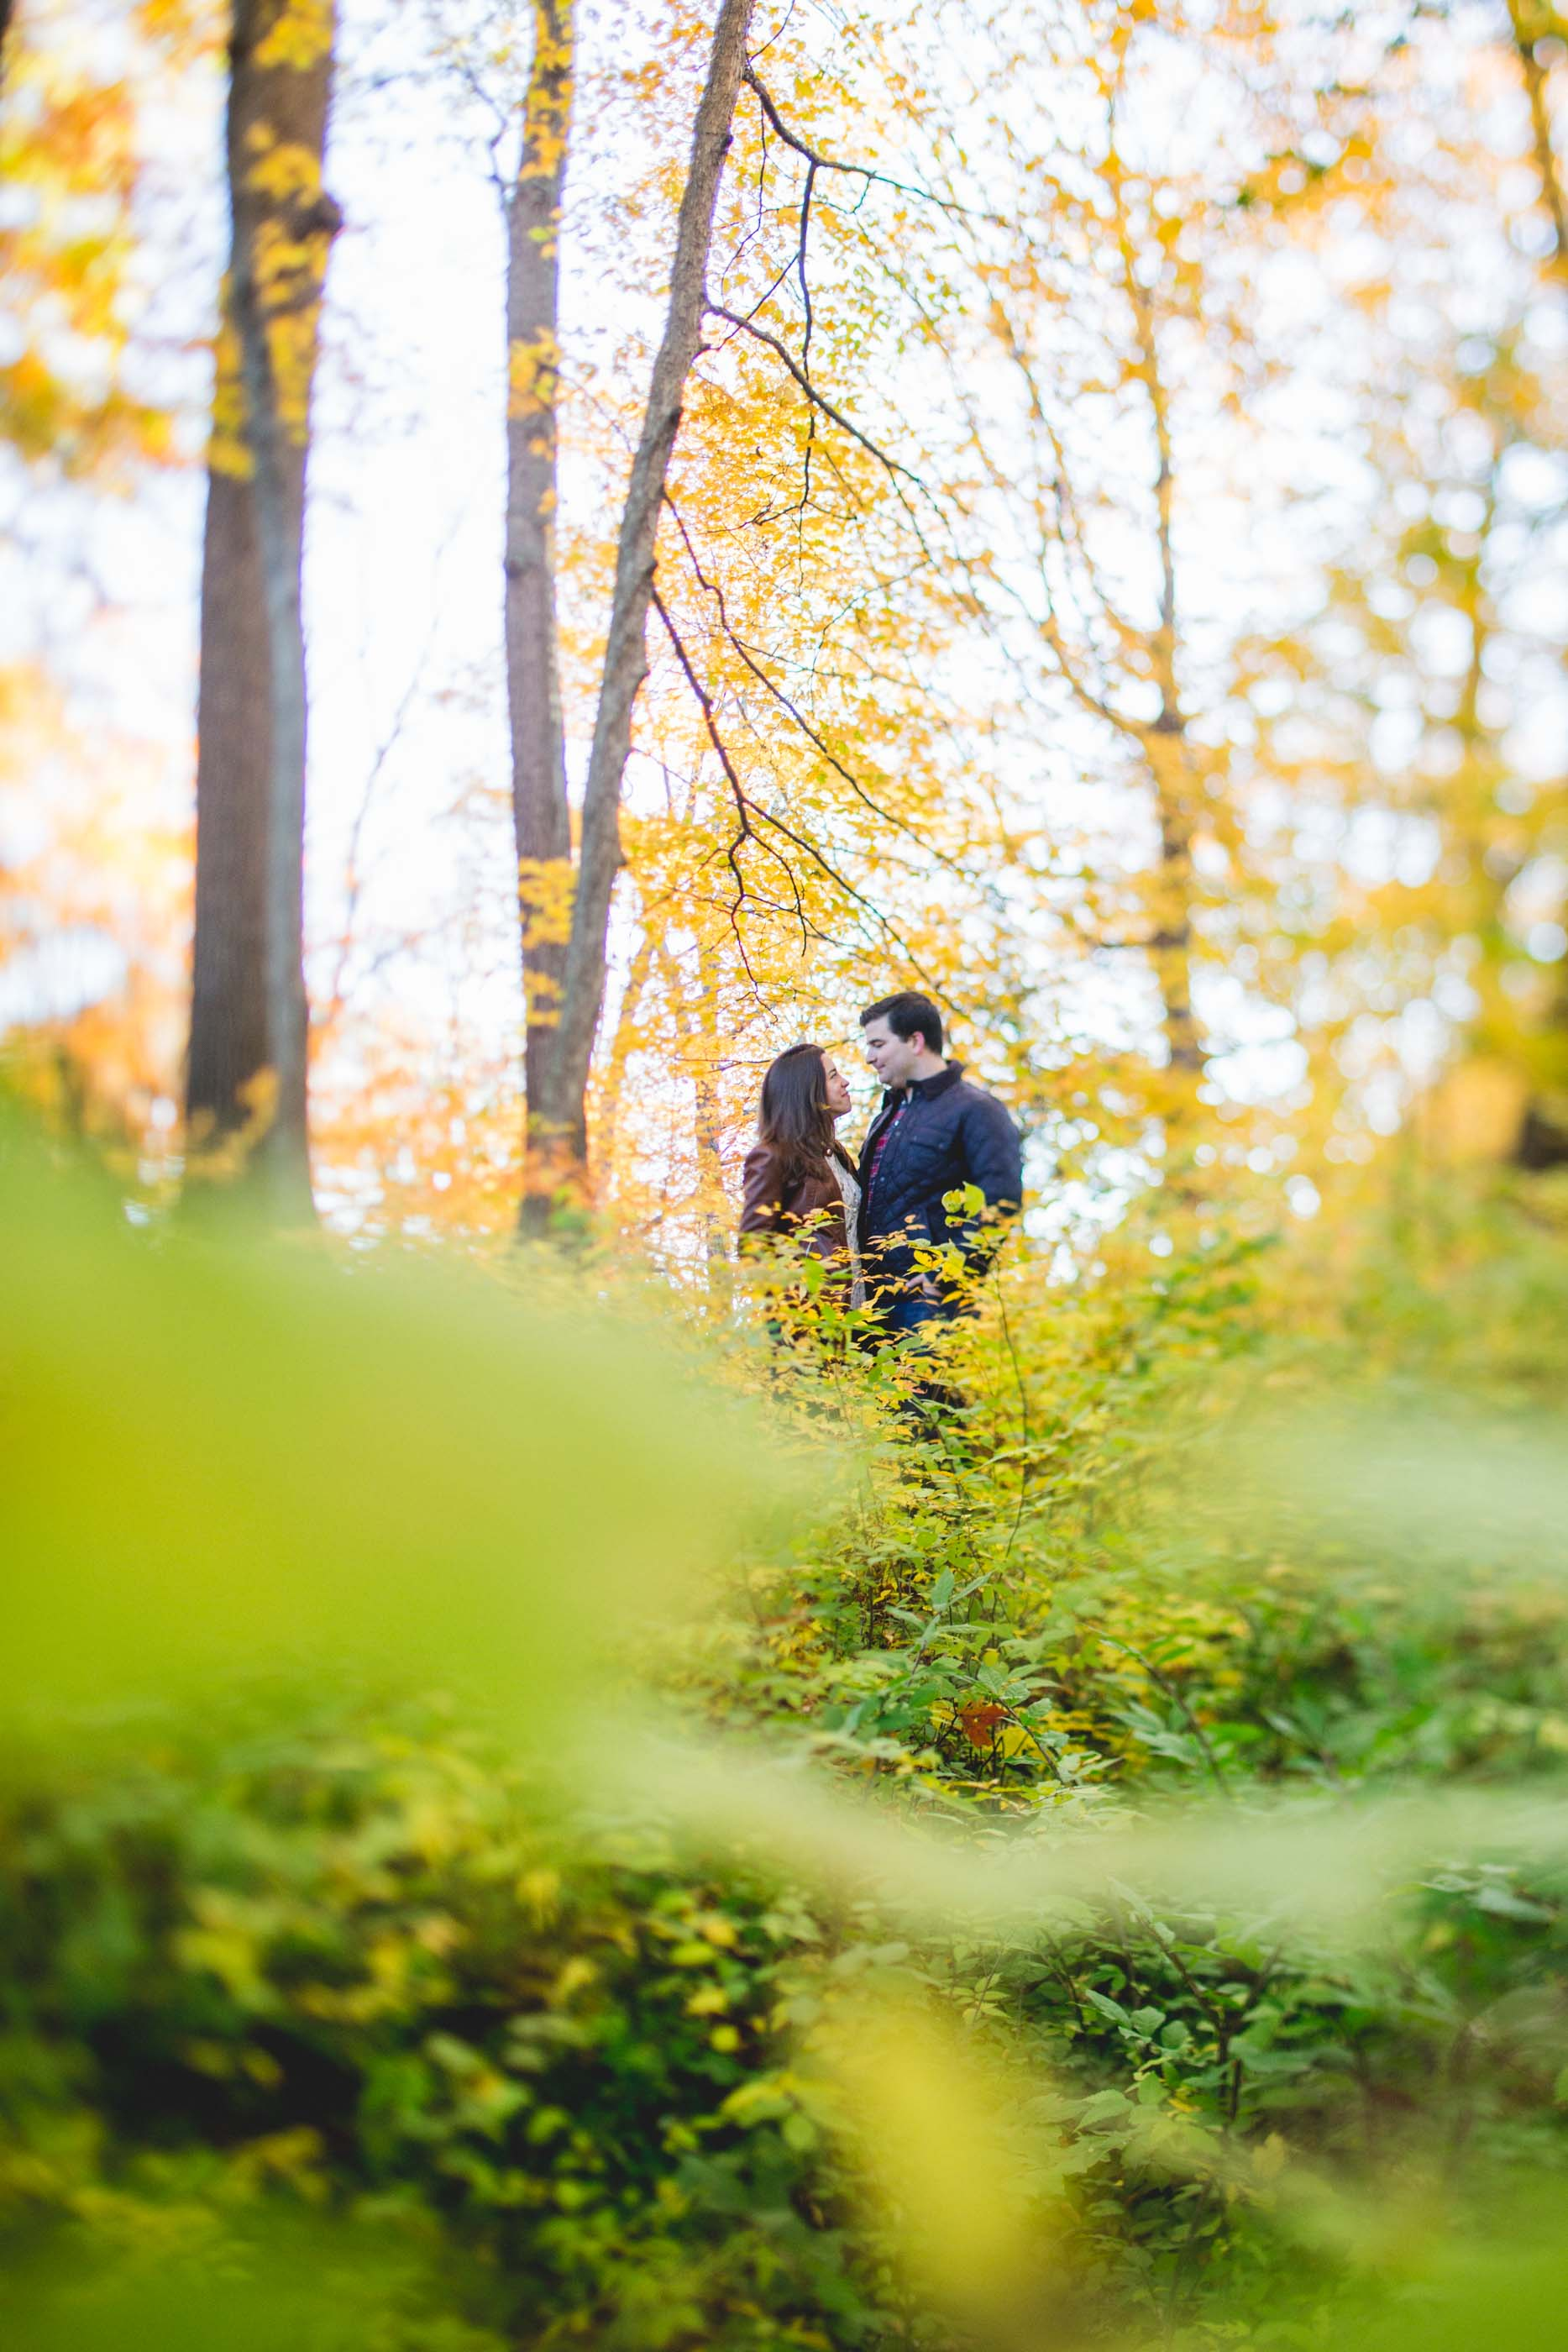 Arboretum-Engagement-Photographer-4.jpg